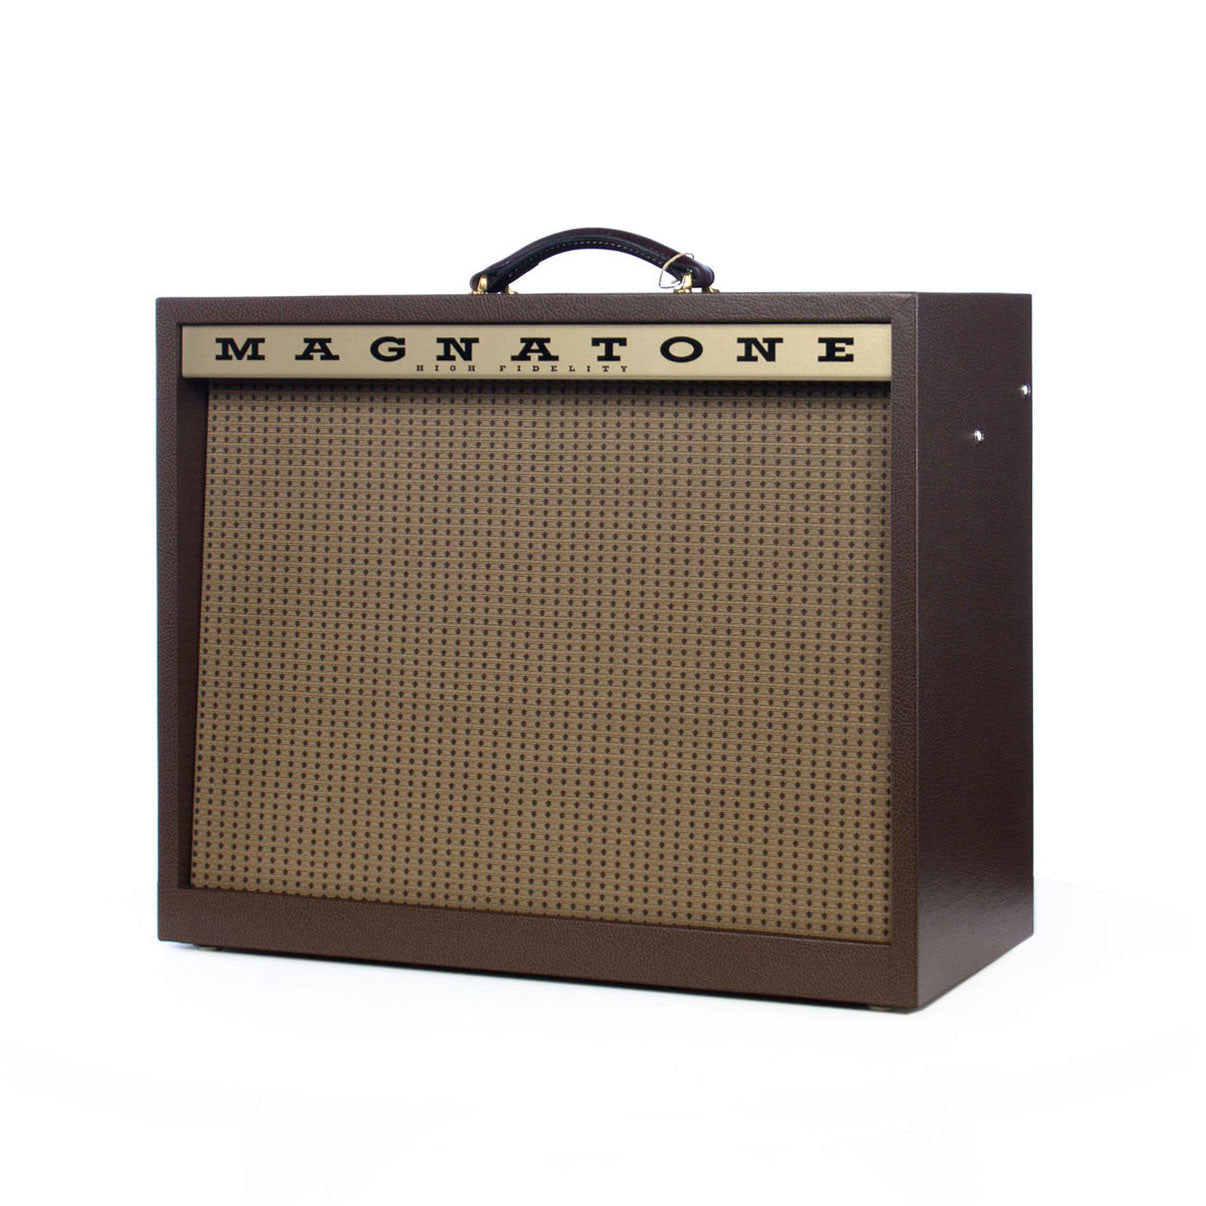 magnatone amps varsity reverb 1x12 combo 15 watt tube guitar amplifier traditional brown cabinet. Black Bedroom Furniture Sets. Home Design Ideas